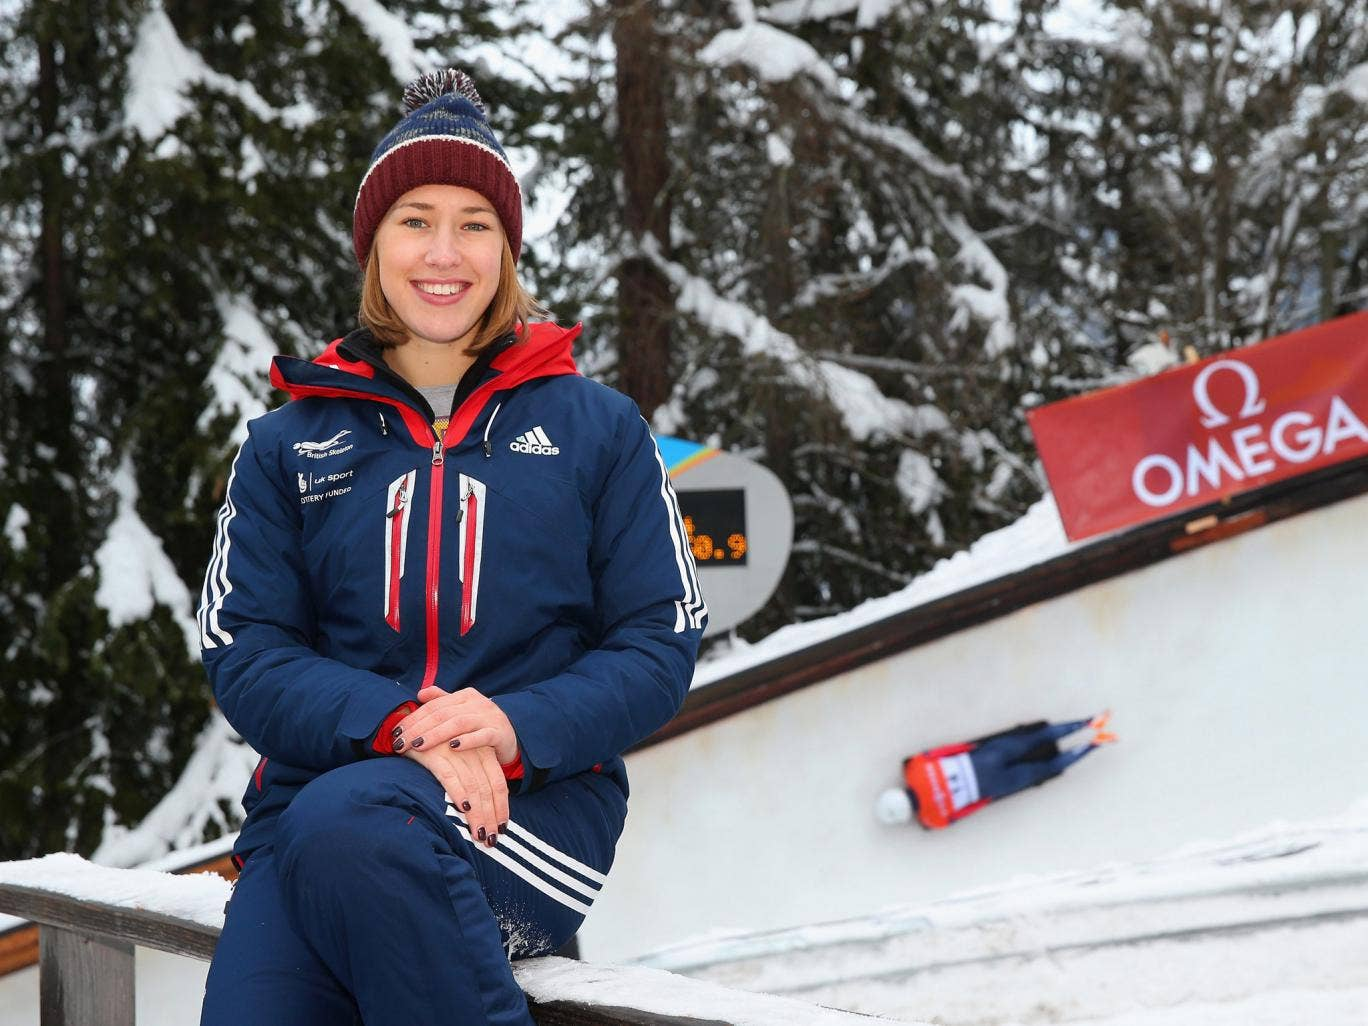 Lizzy Yarnold is among the brightest hopes for Team GB in Sochi